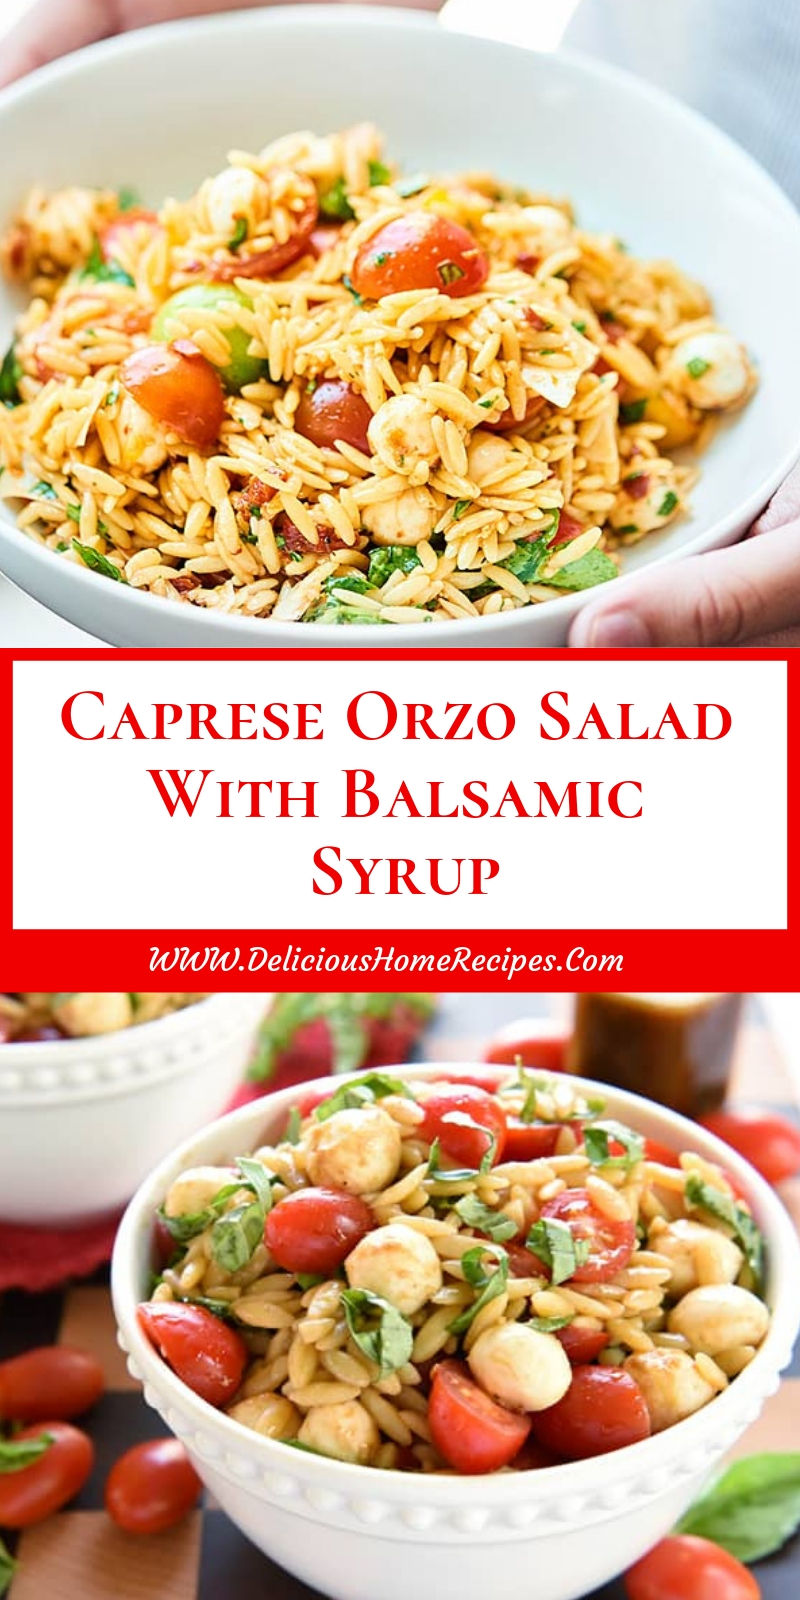 Caprese Orzo Salad With Balsamic Syrup